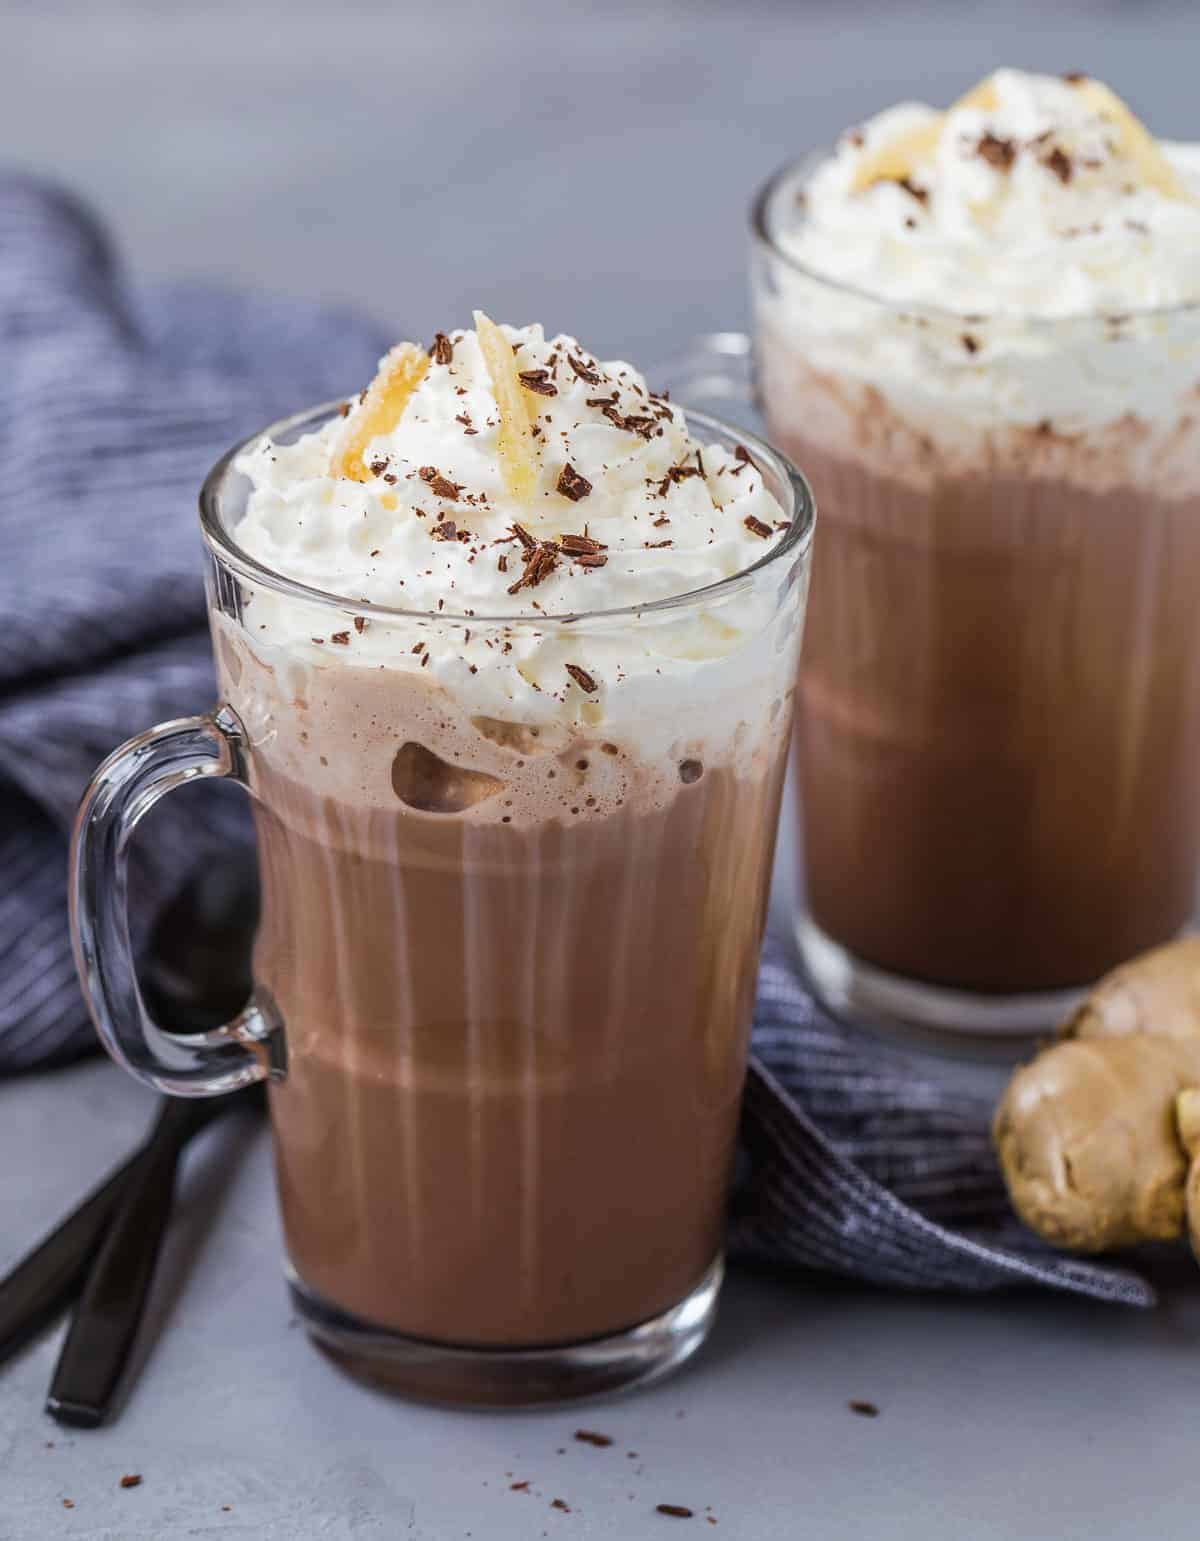 Two mugs of microwave hot chocolate topped with whipped cream, chocolate shavings, and candied ginger.